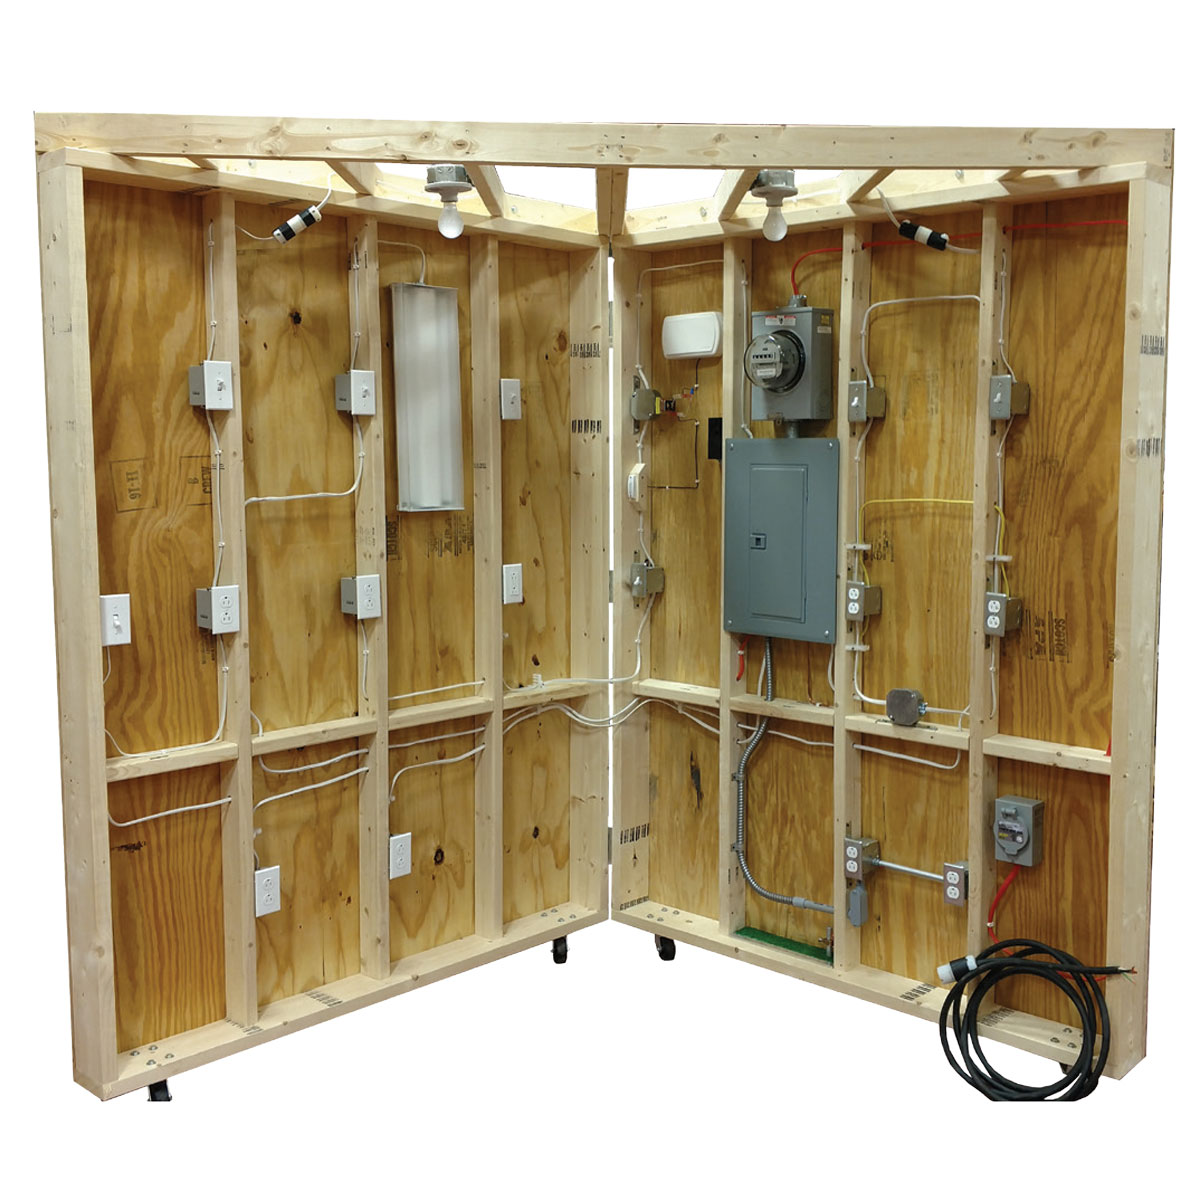 Residential Wiring Demonstrator TUE-200